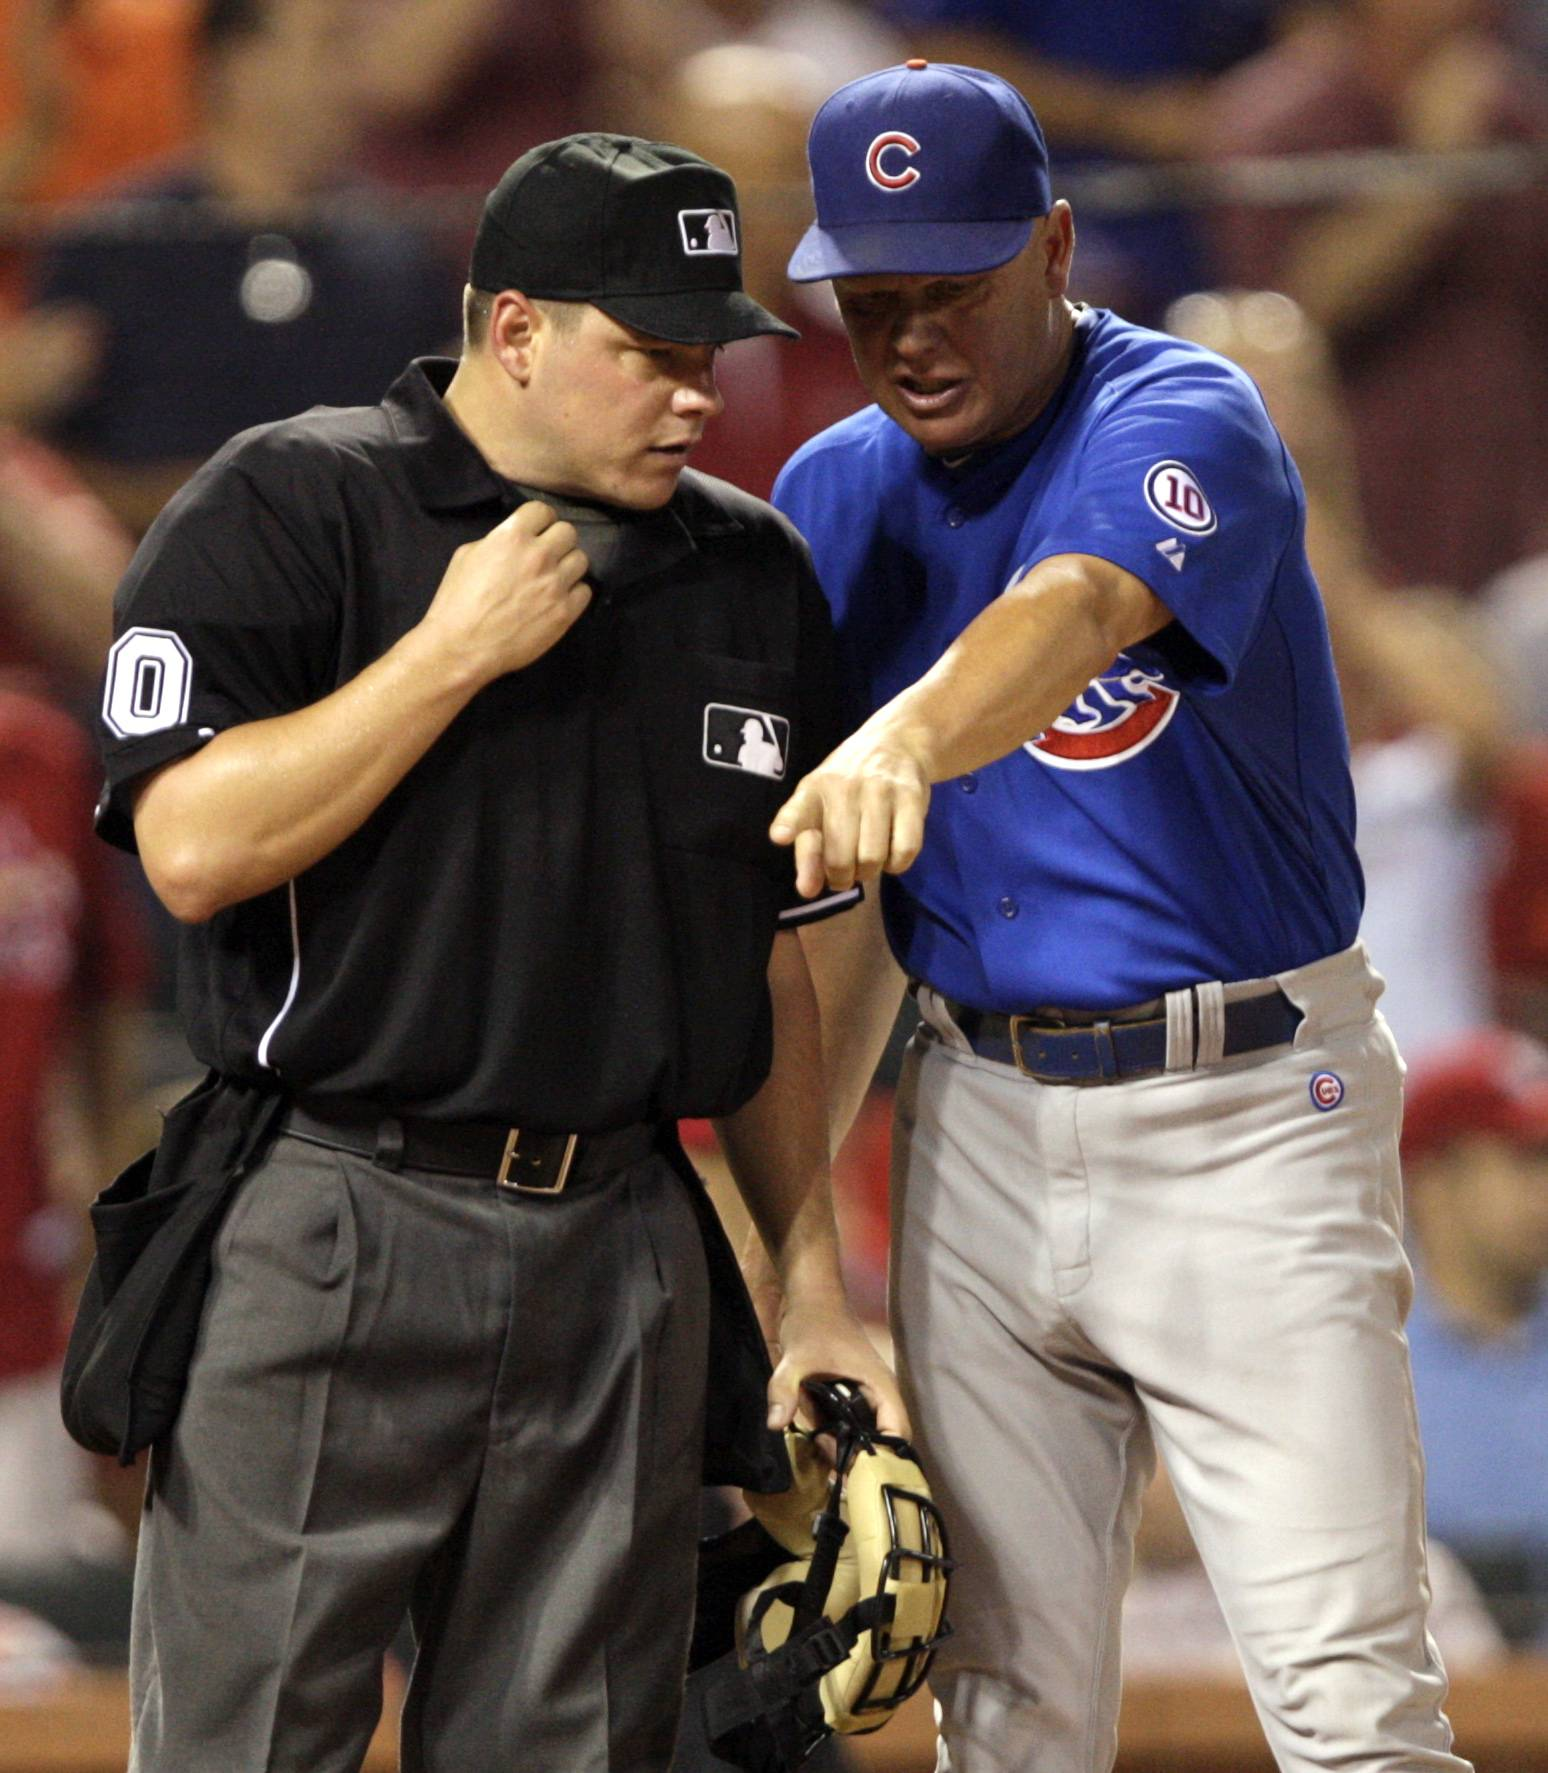 Mike Quade argues a call at the plate Friday with home plate umpire D.J. Reyburn in the seventh inning.